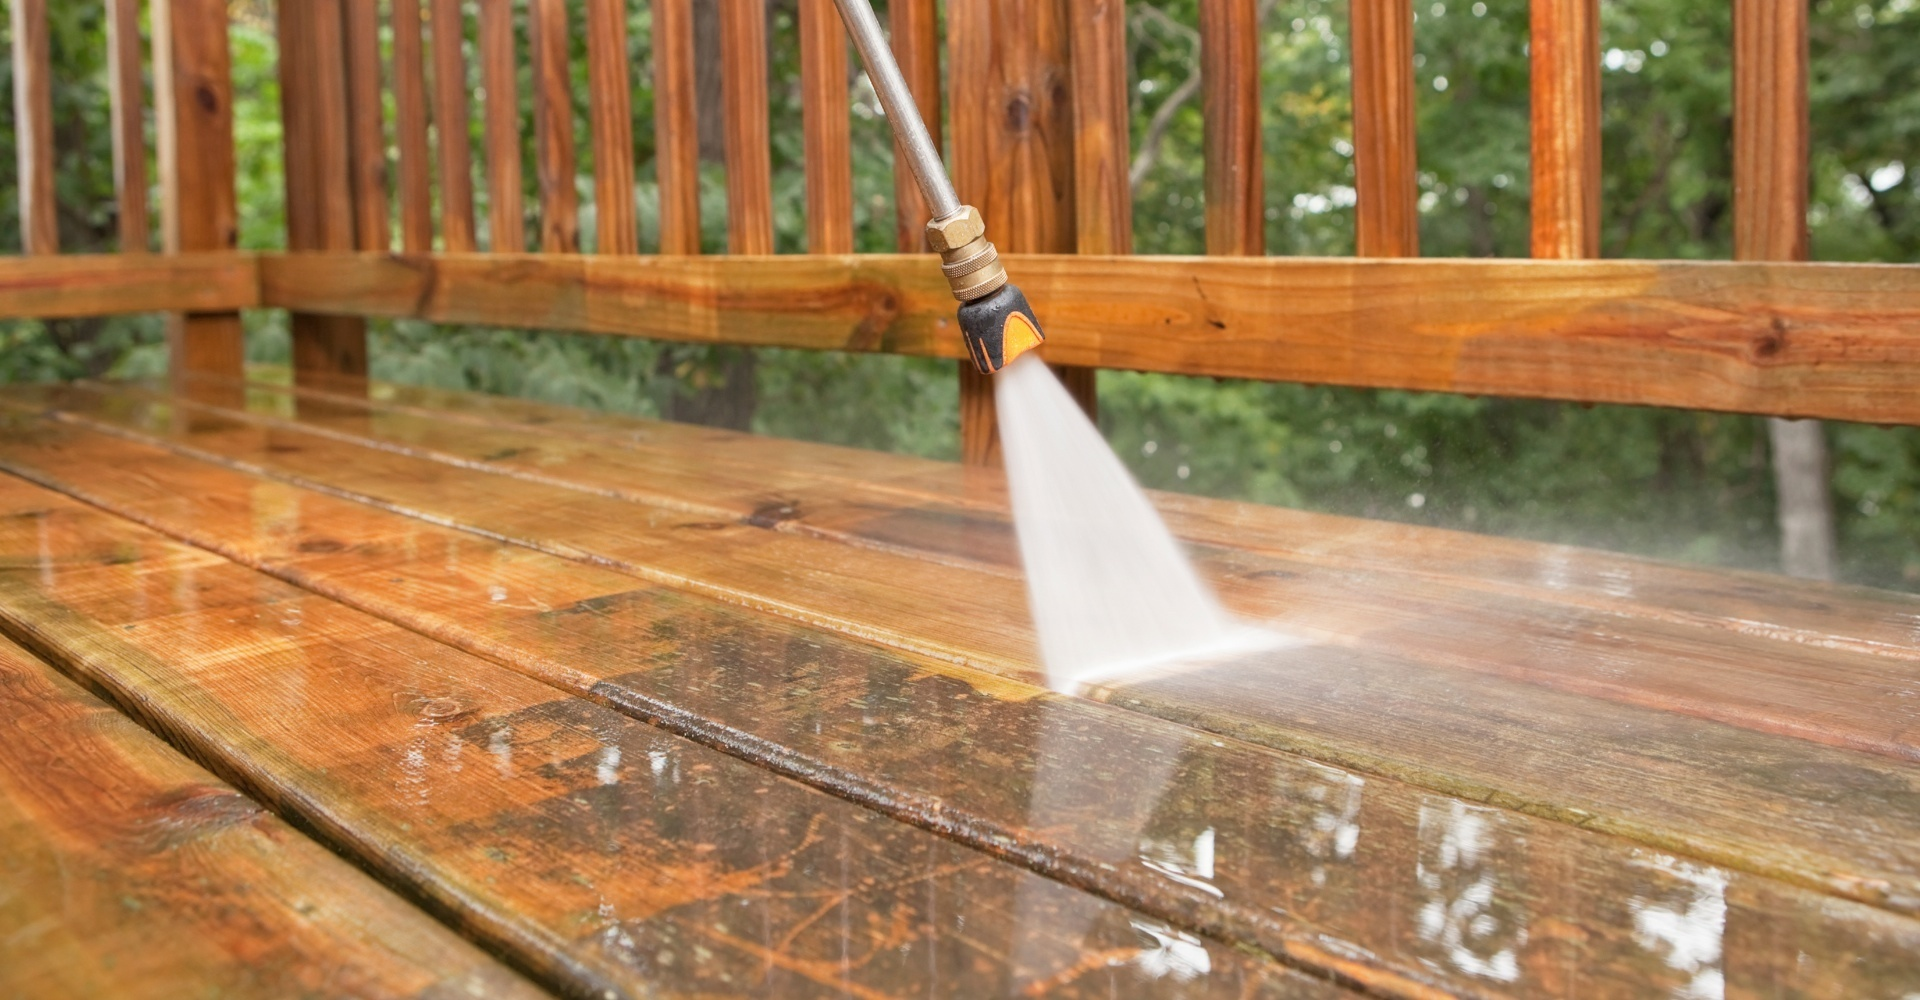 Pressure Washing Deck in Lakeland